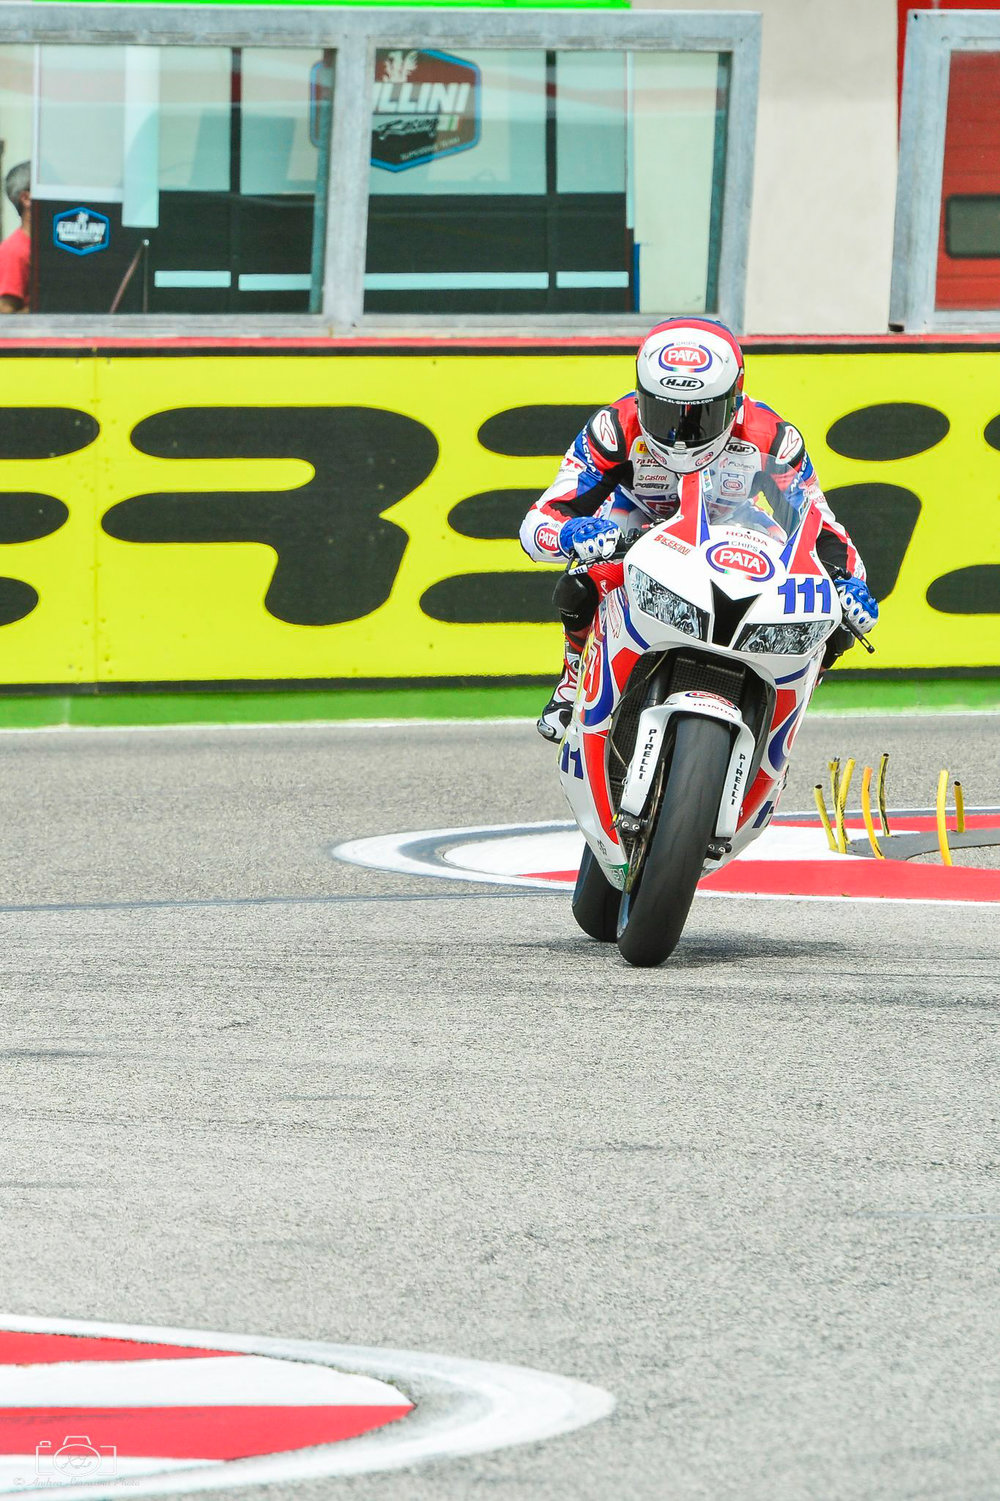 1-superbike-ssp-moto-bike-imola-race.jpg